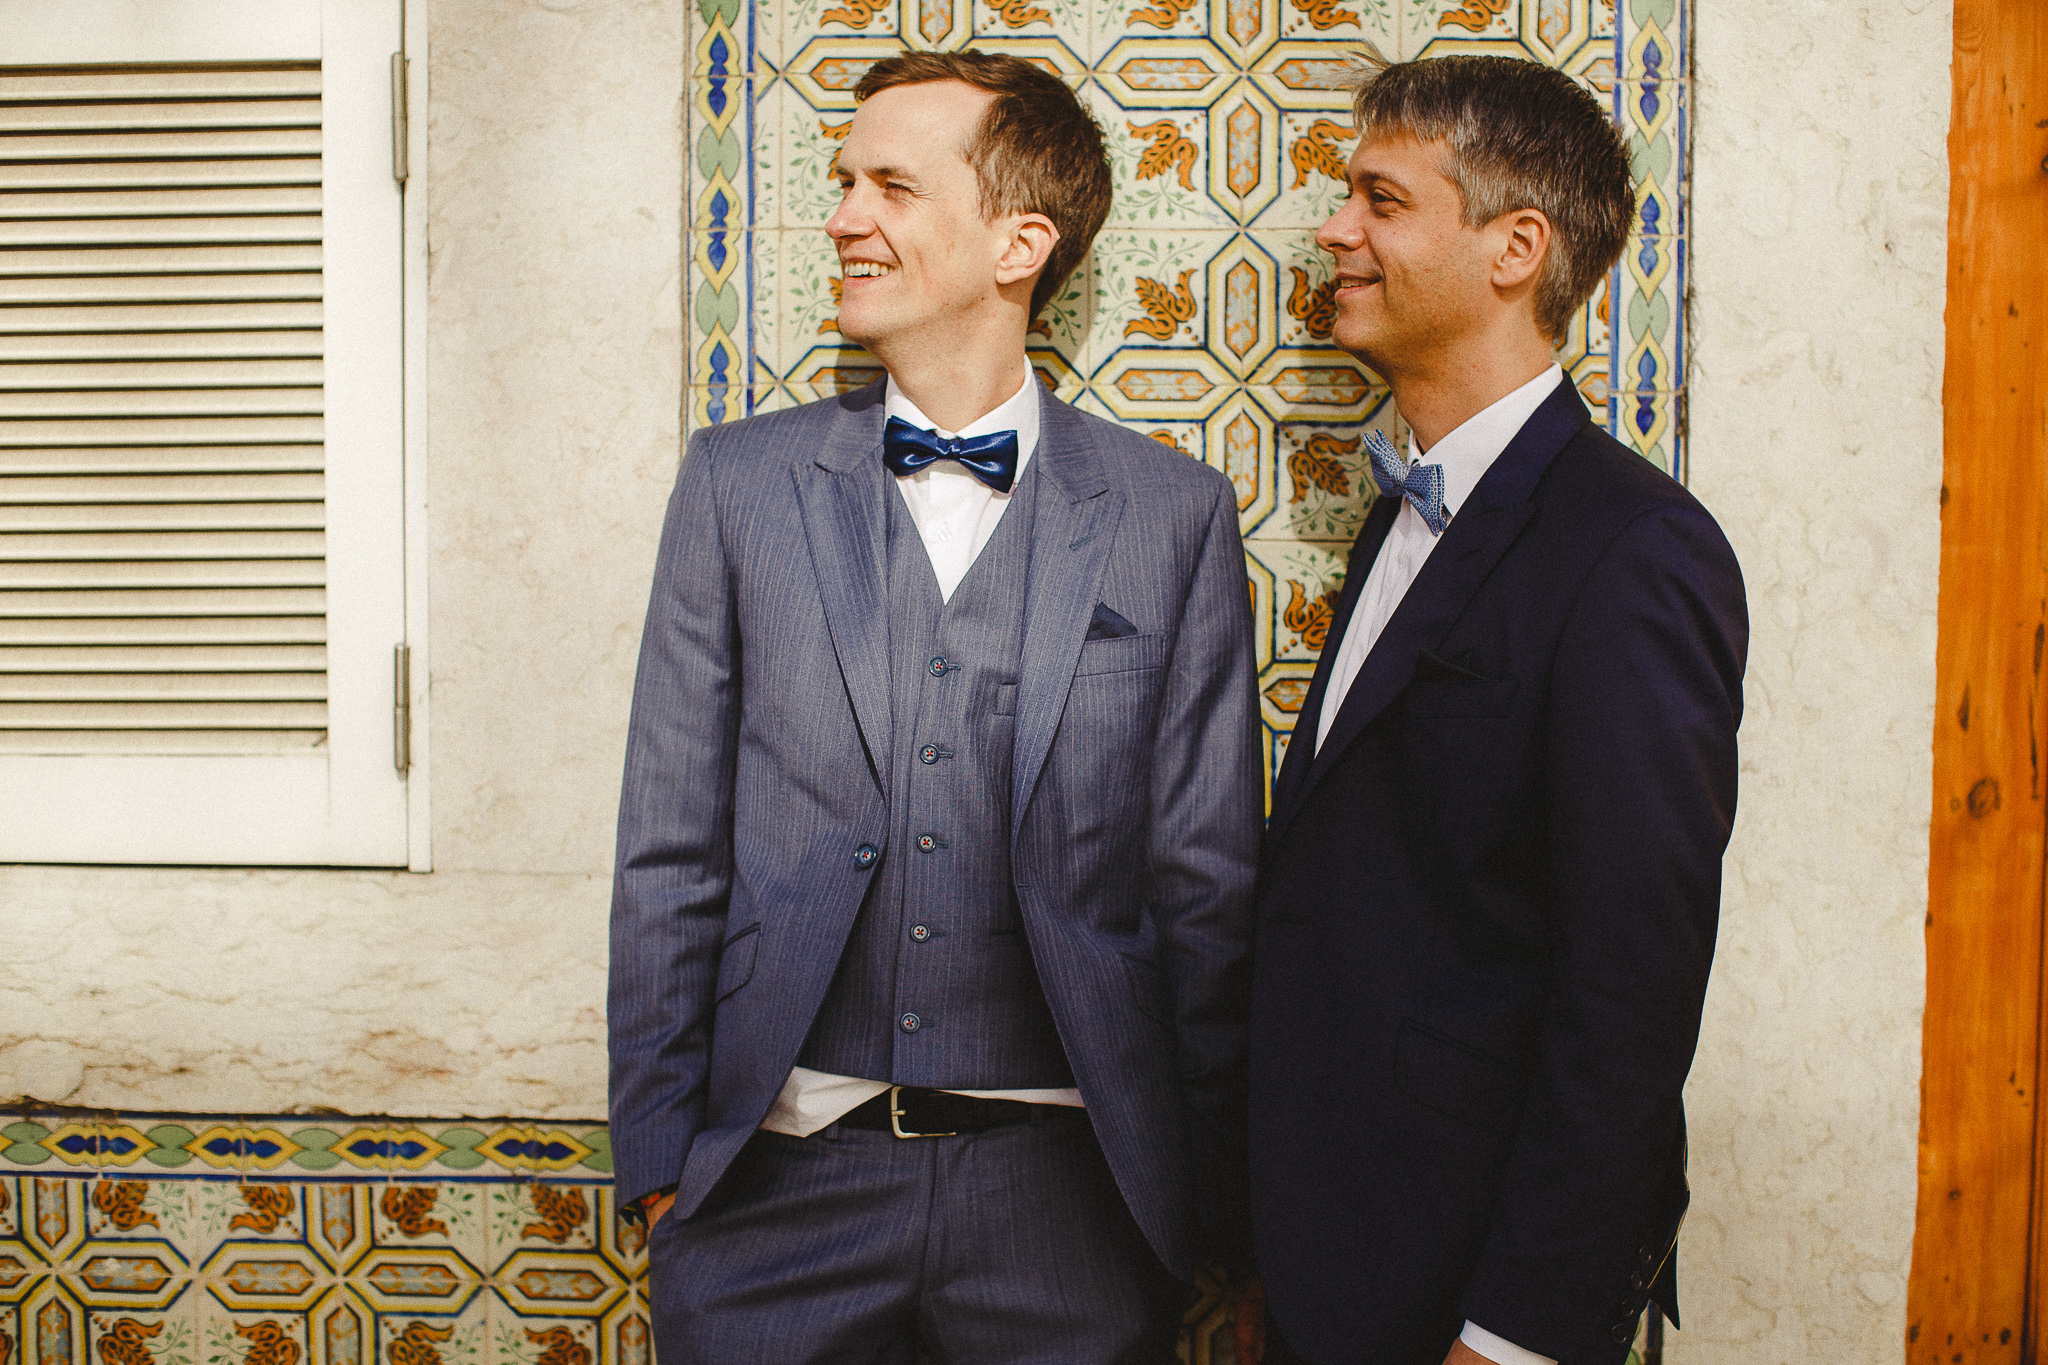 A gay couple stands against a beautiful tile wall in Lisbon after their elopement.